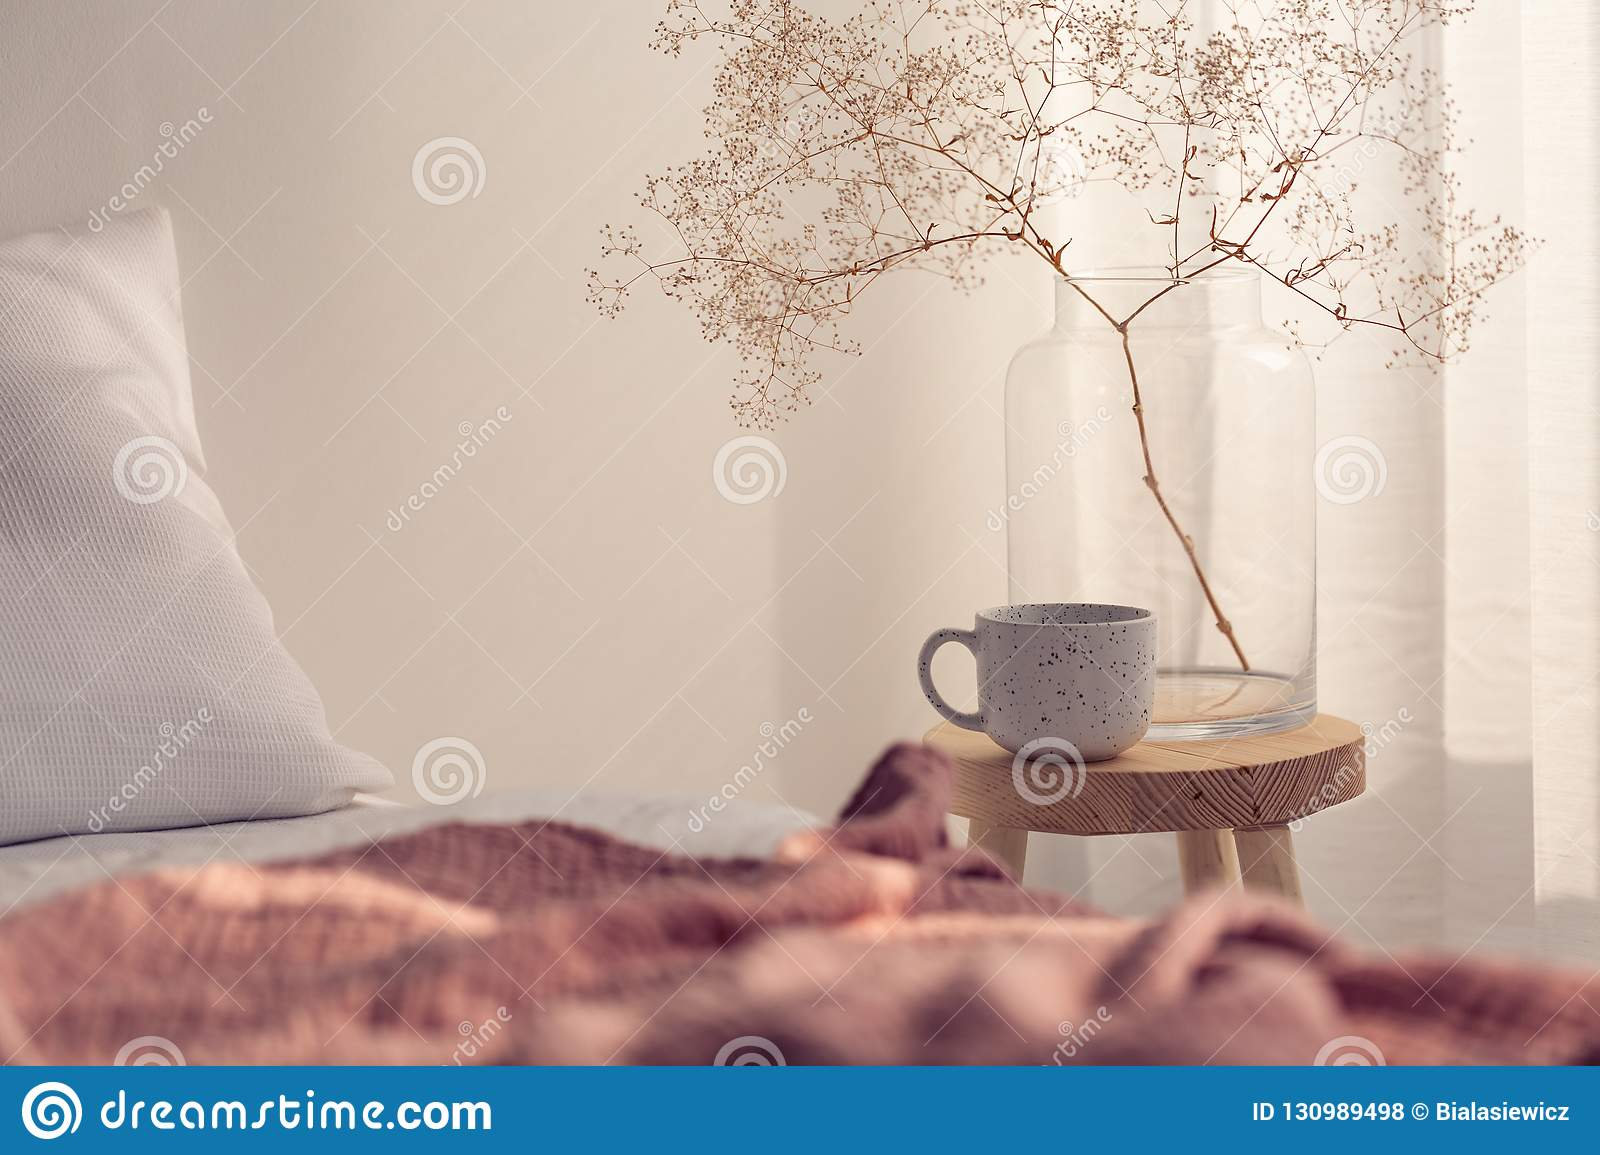 Closeup of coffee cup and flower in glass vase on the bedside table of bright bedroom interior